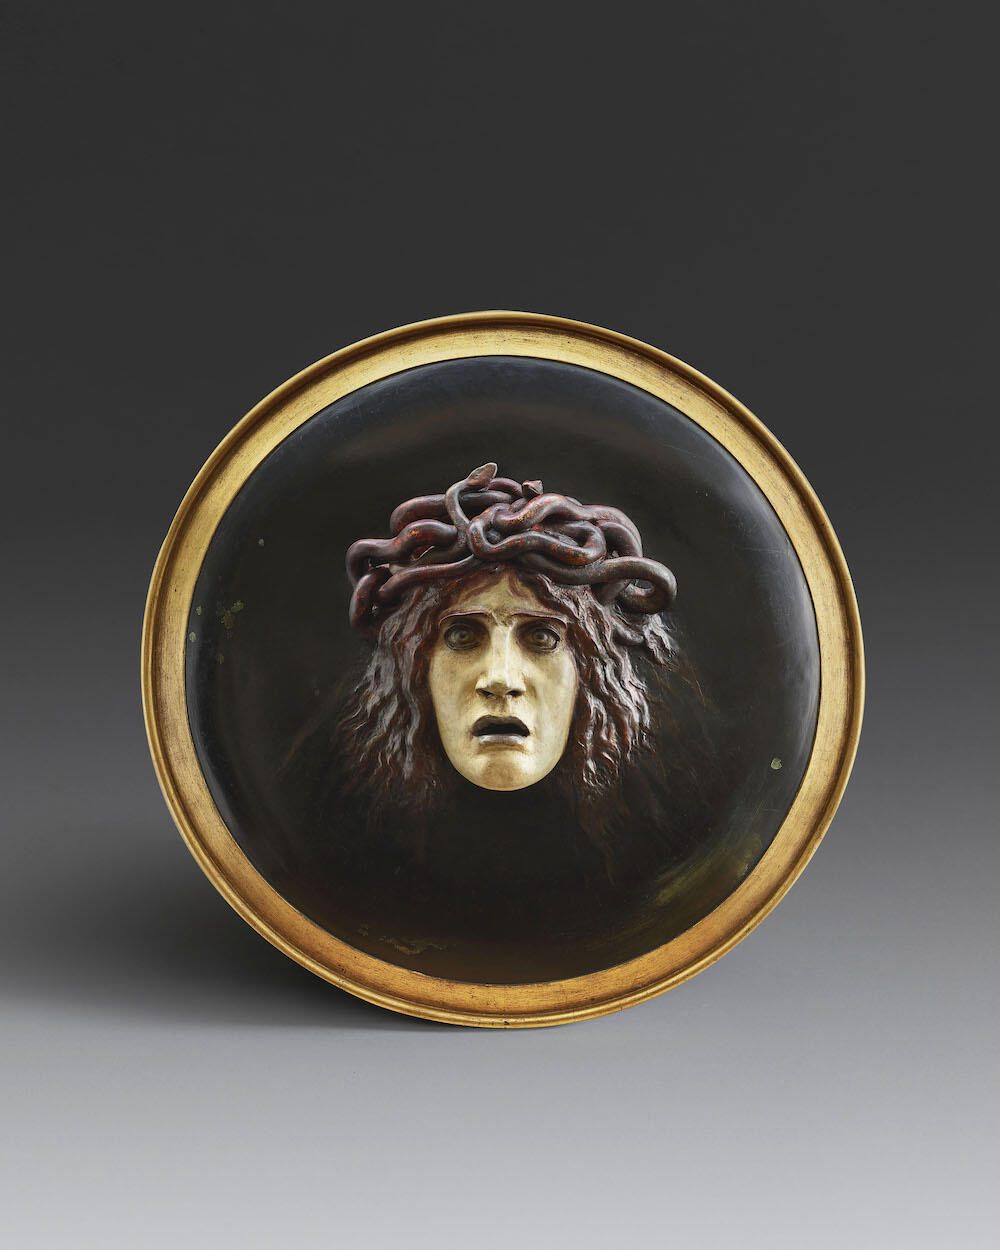 Arnold Böcklin (1827-1901)Shield with the Head of MedusaPolychrome plaster and papier-mâchéDiameter: 60.5 cmConceived in 1885 and modelled around 1887